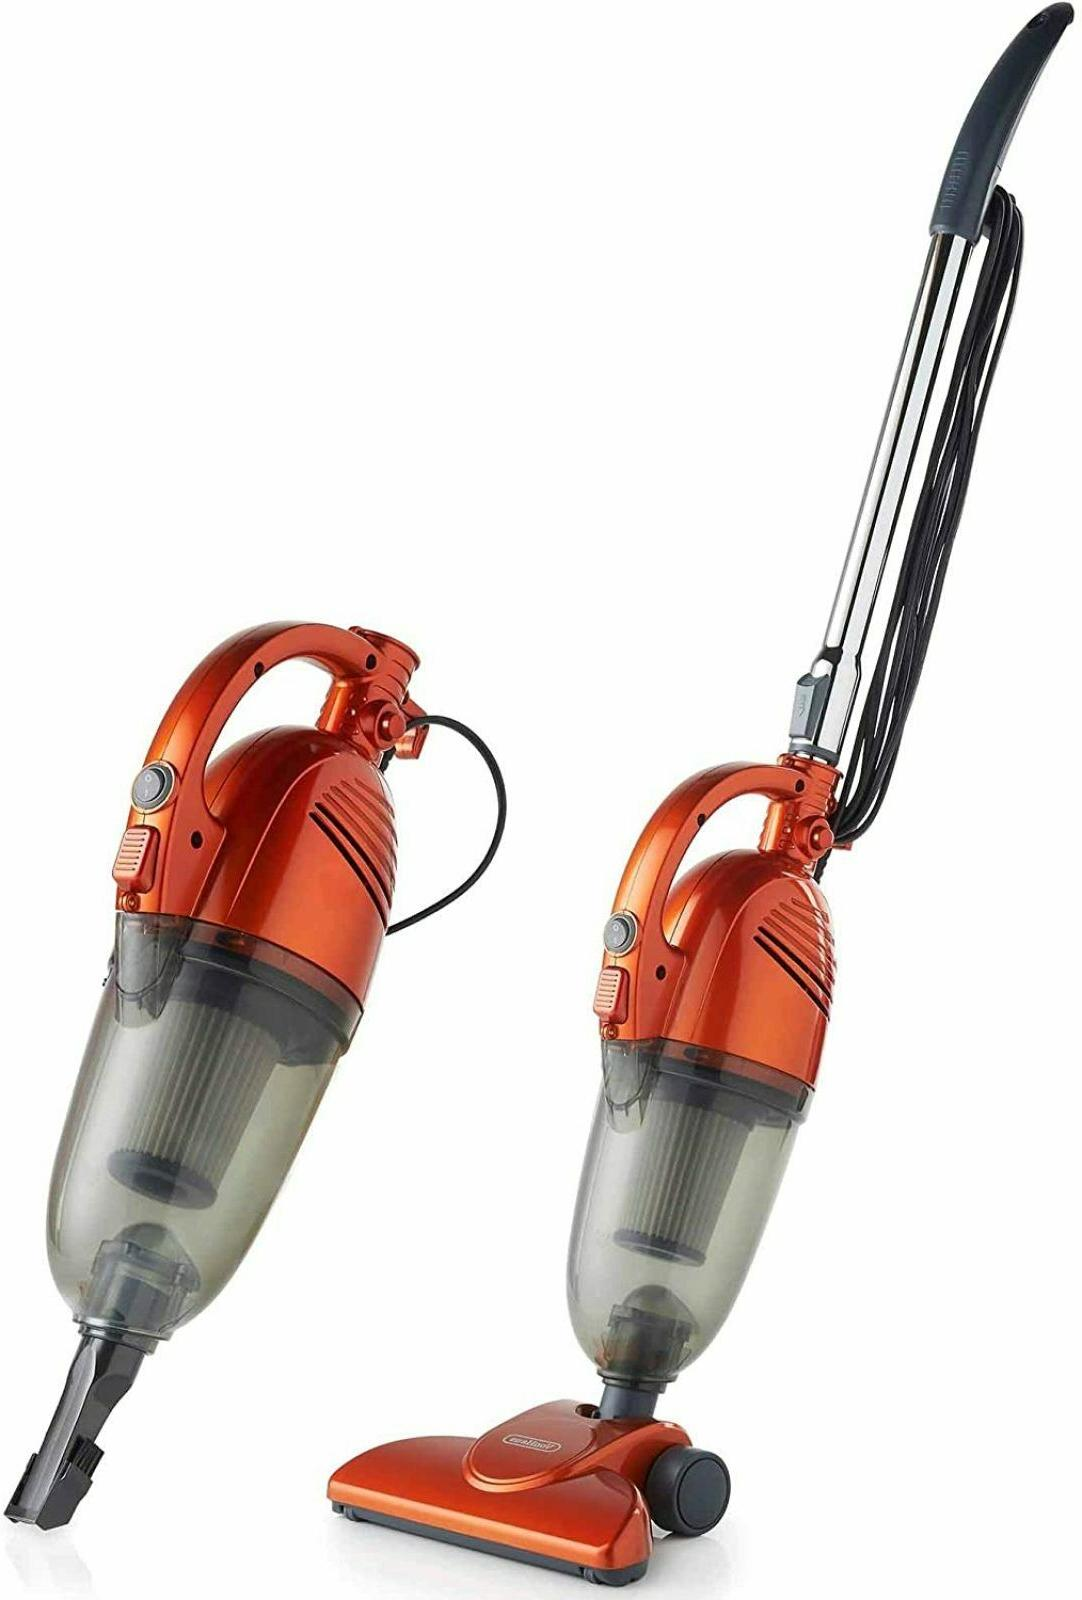 2 in 1 Stick Handheld Vacuum Cleaner 600W Corded Upright Lig